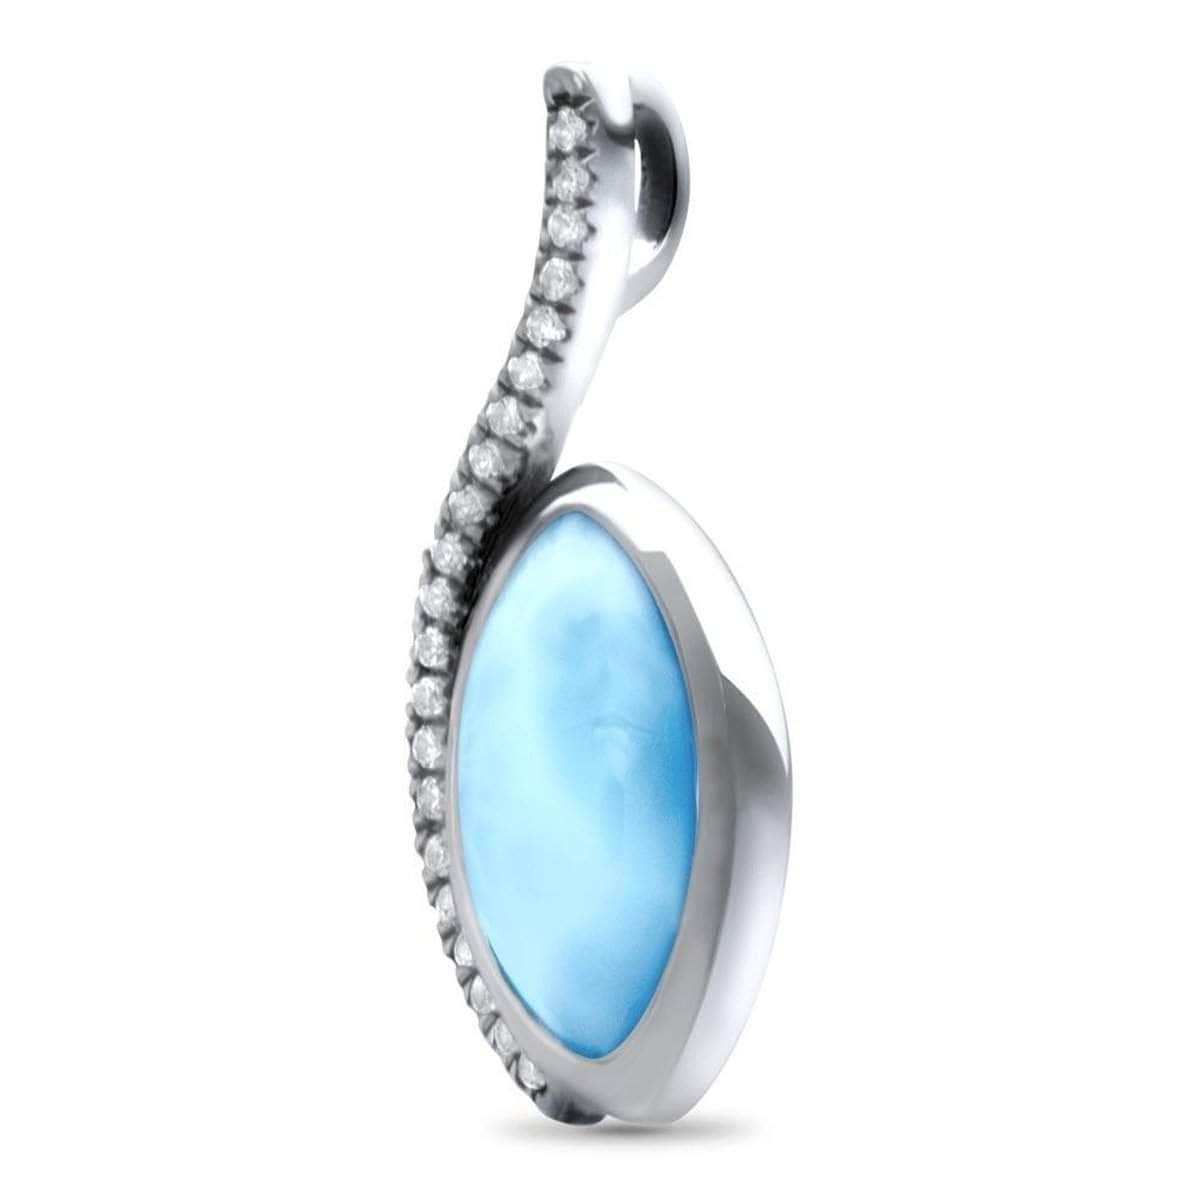 Epiphany White Sapphire Necklace - Nepip00-00-Marahlago Larimar-Renee Taylor Gallery